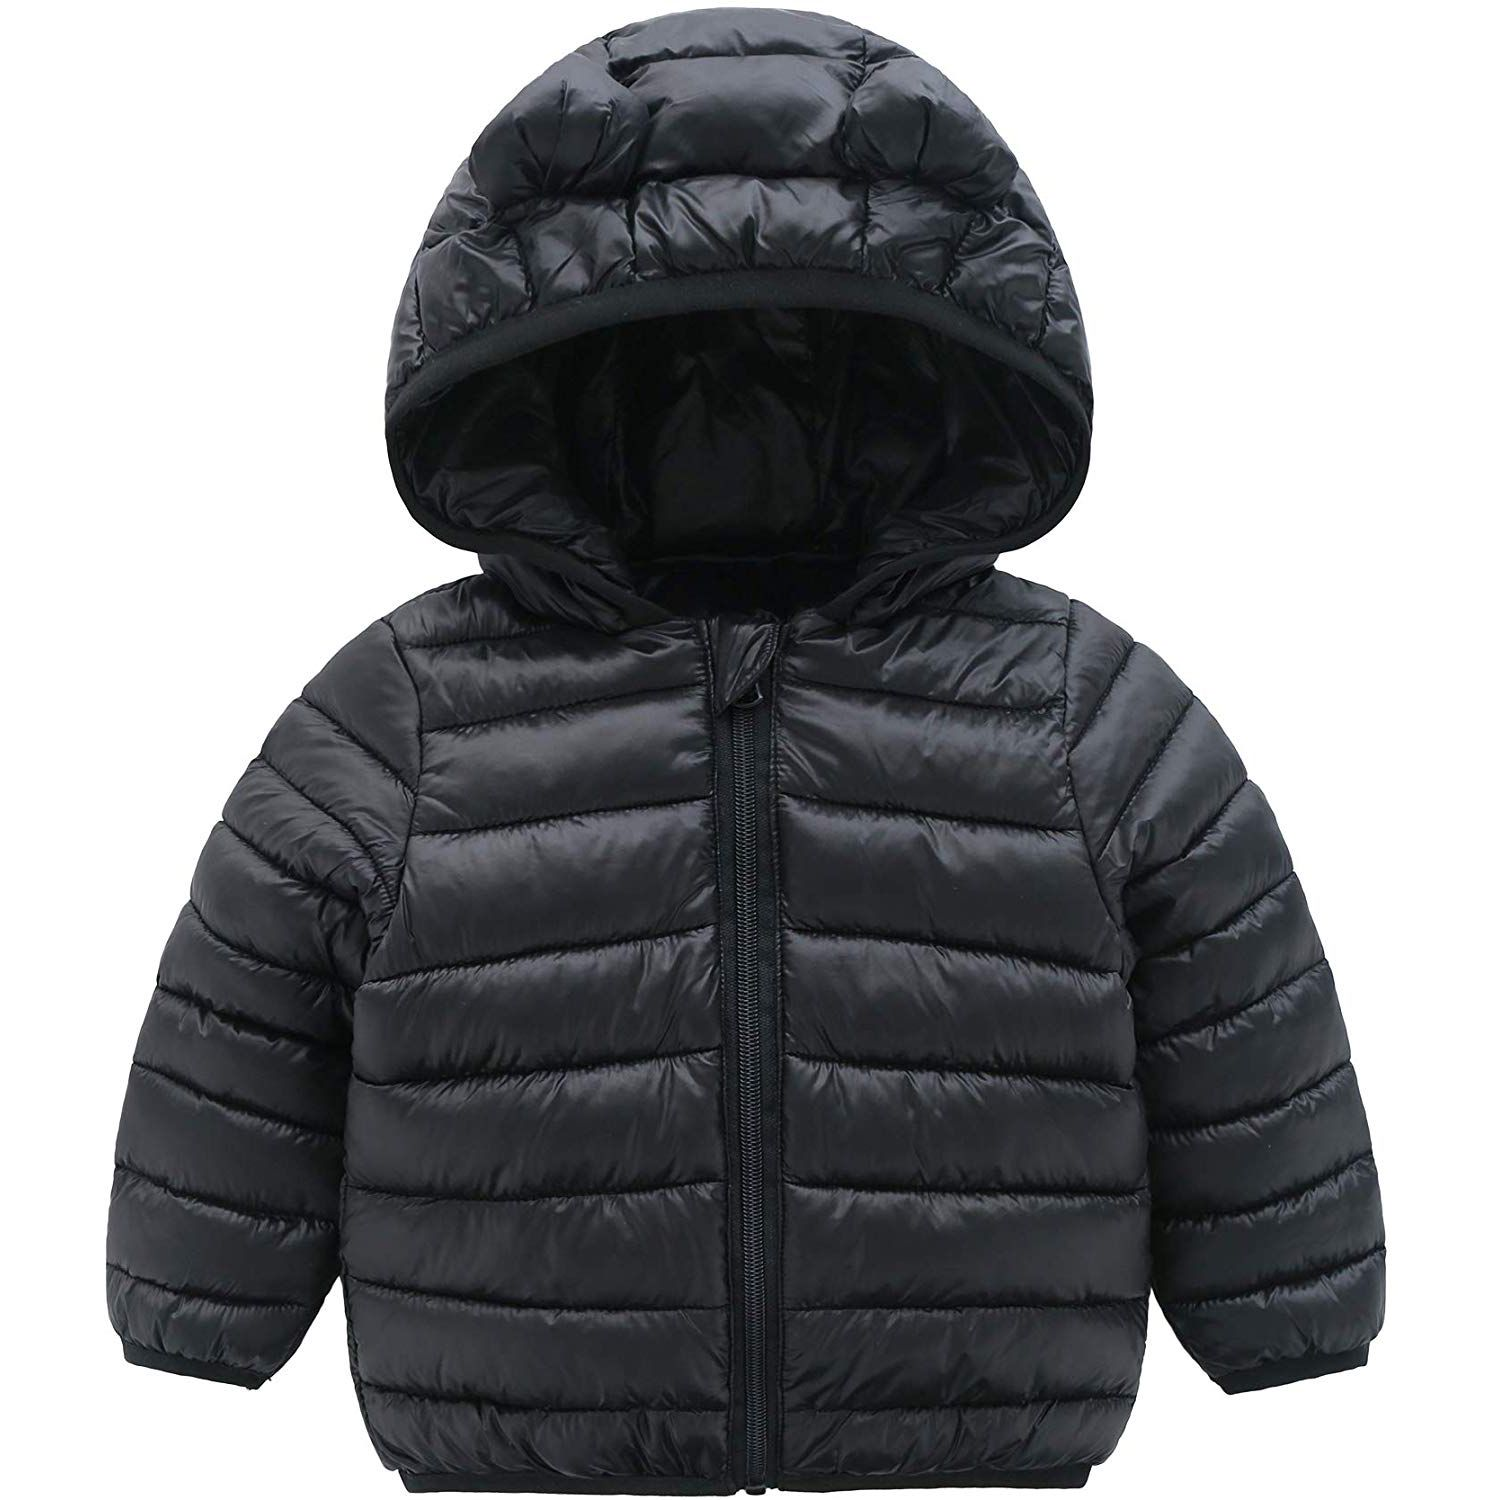 Winter Coats For Kids With Hoods Padded Light Puffer Jacket For Baby Boys Girls Infants Toddlers Kids Winter Coats Winter Coat Hooded Winter Coat [ 1500 x 1500 Pixel ]